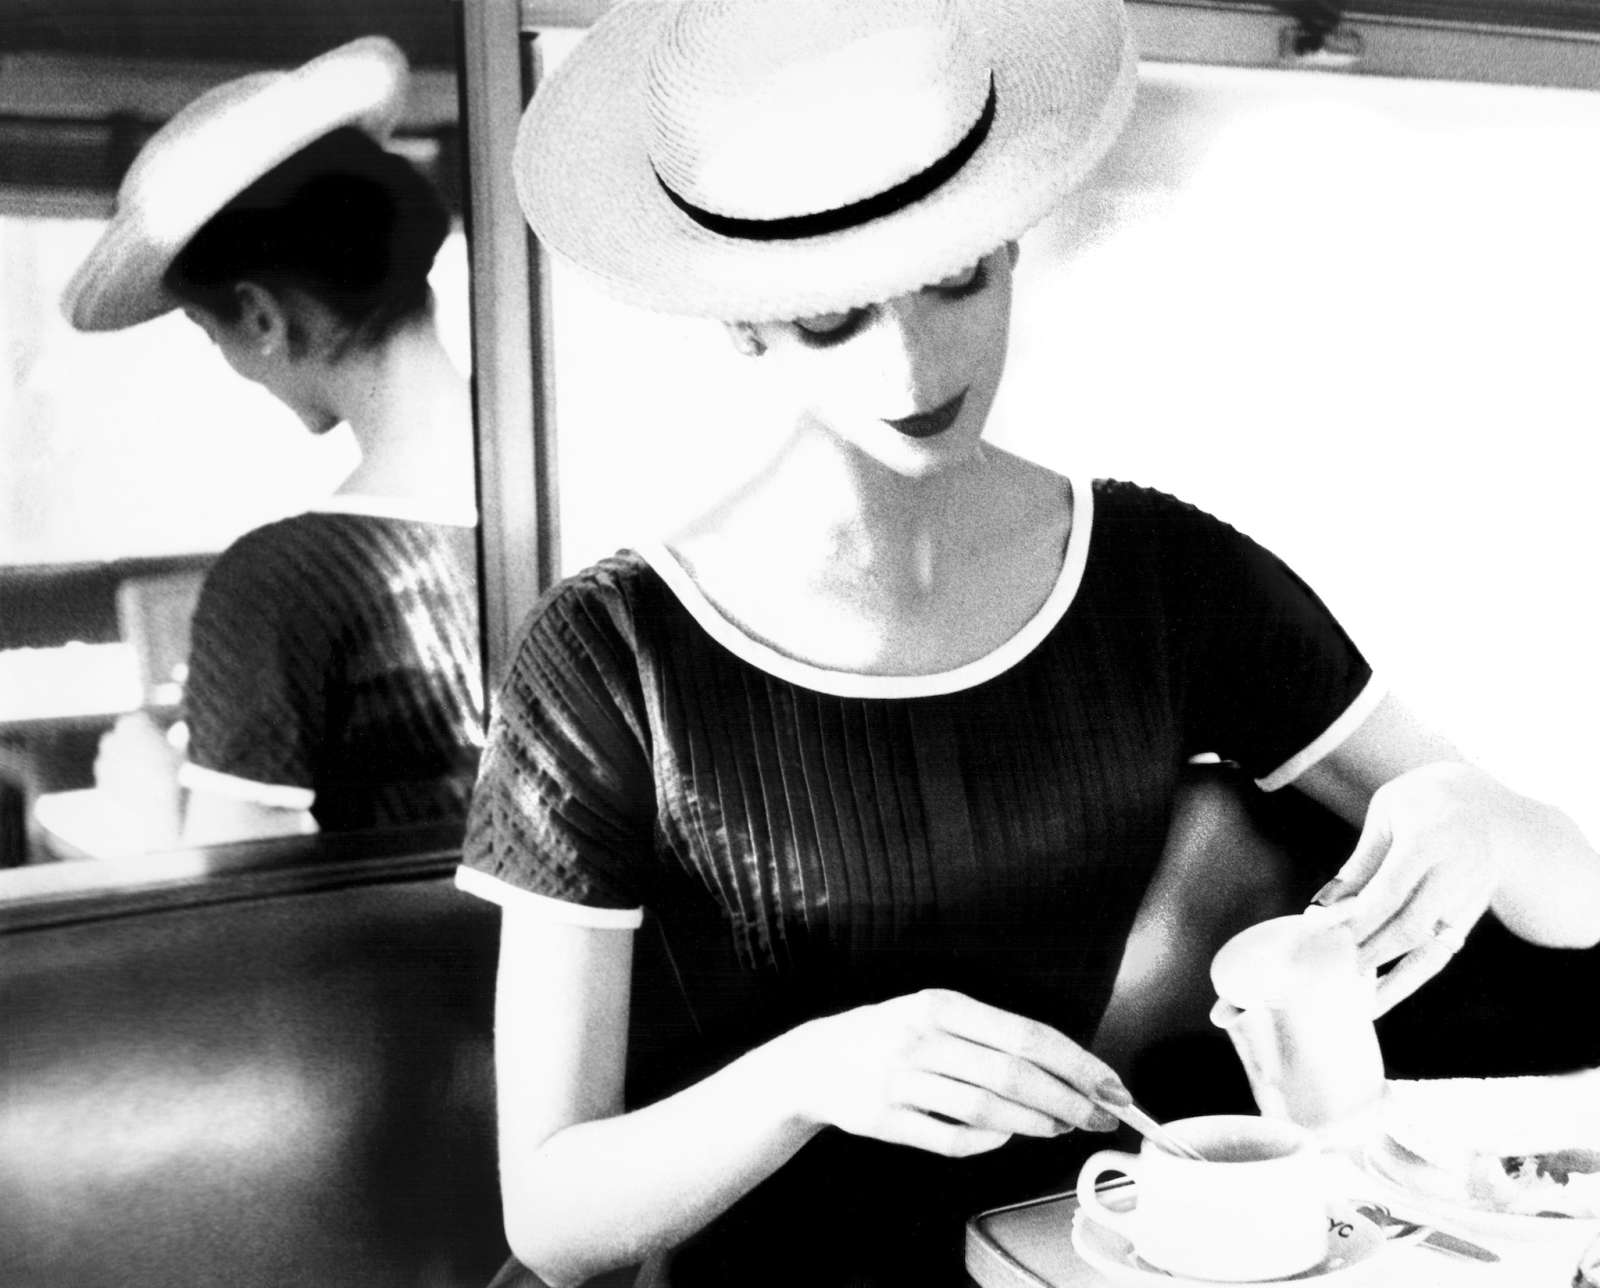 Carmen Having Tea, circa 1950